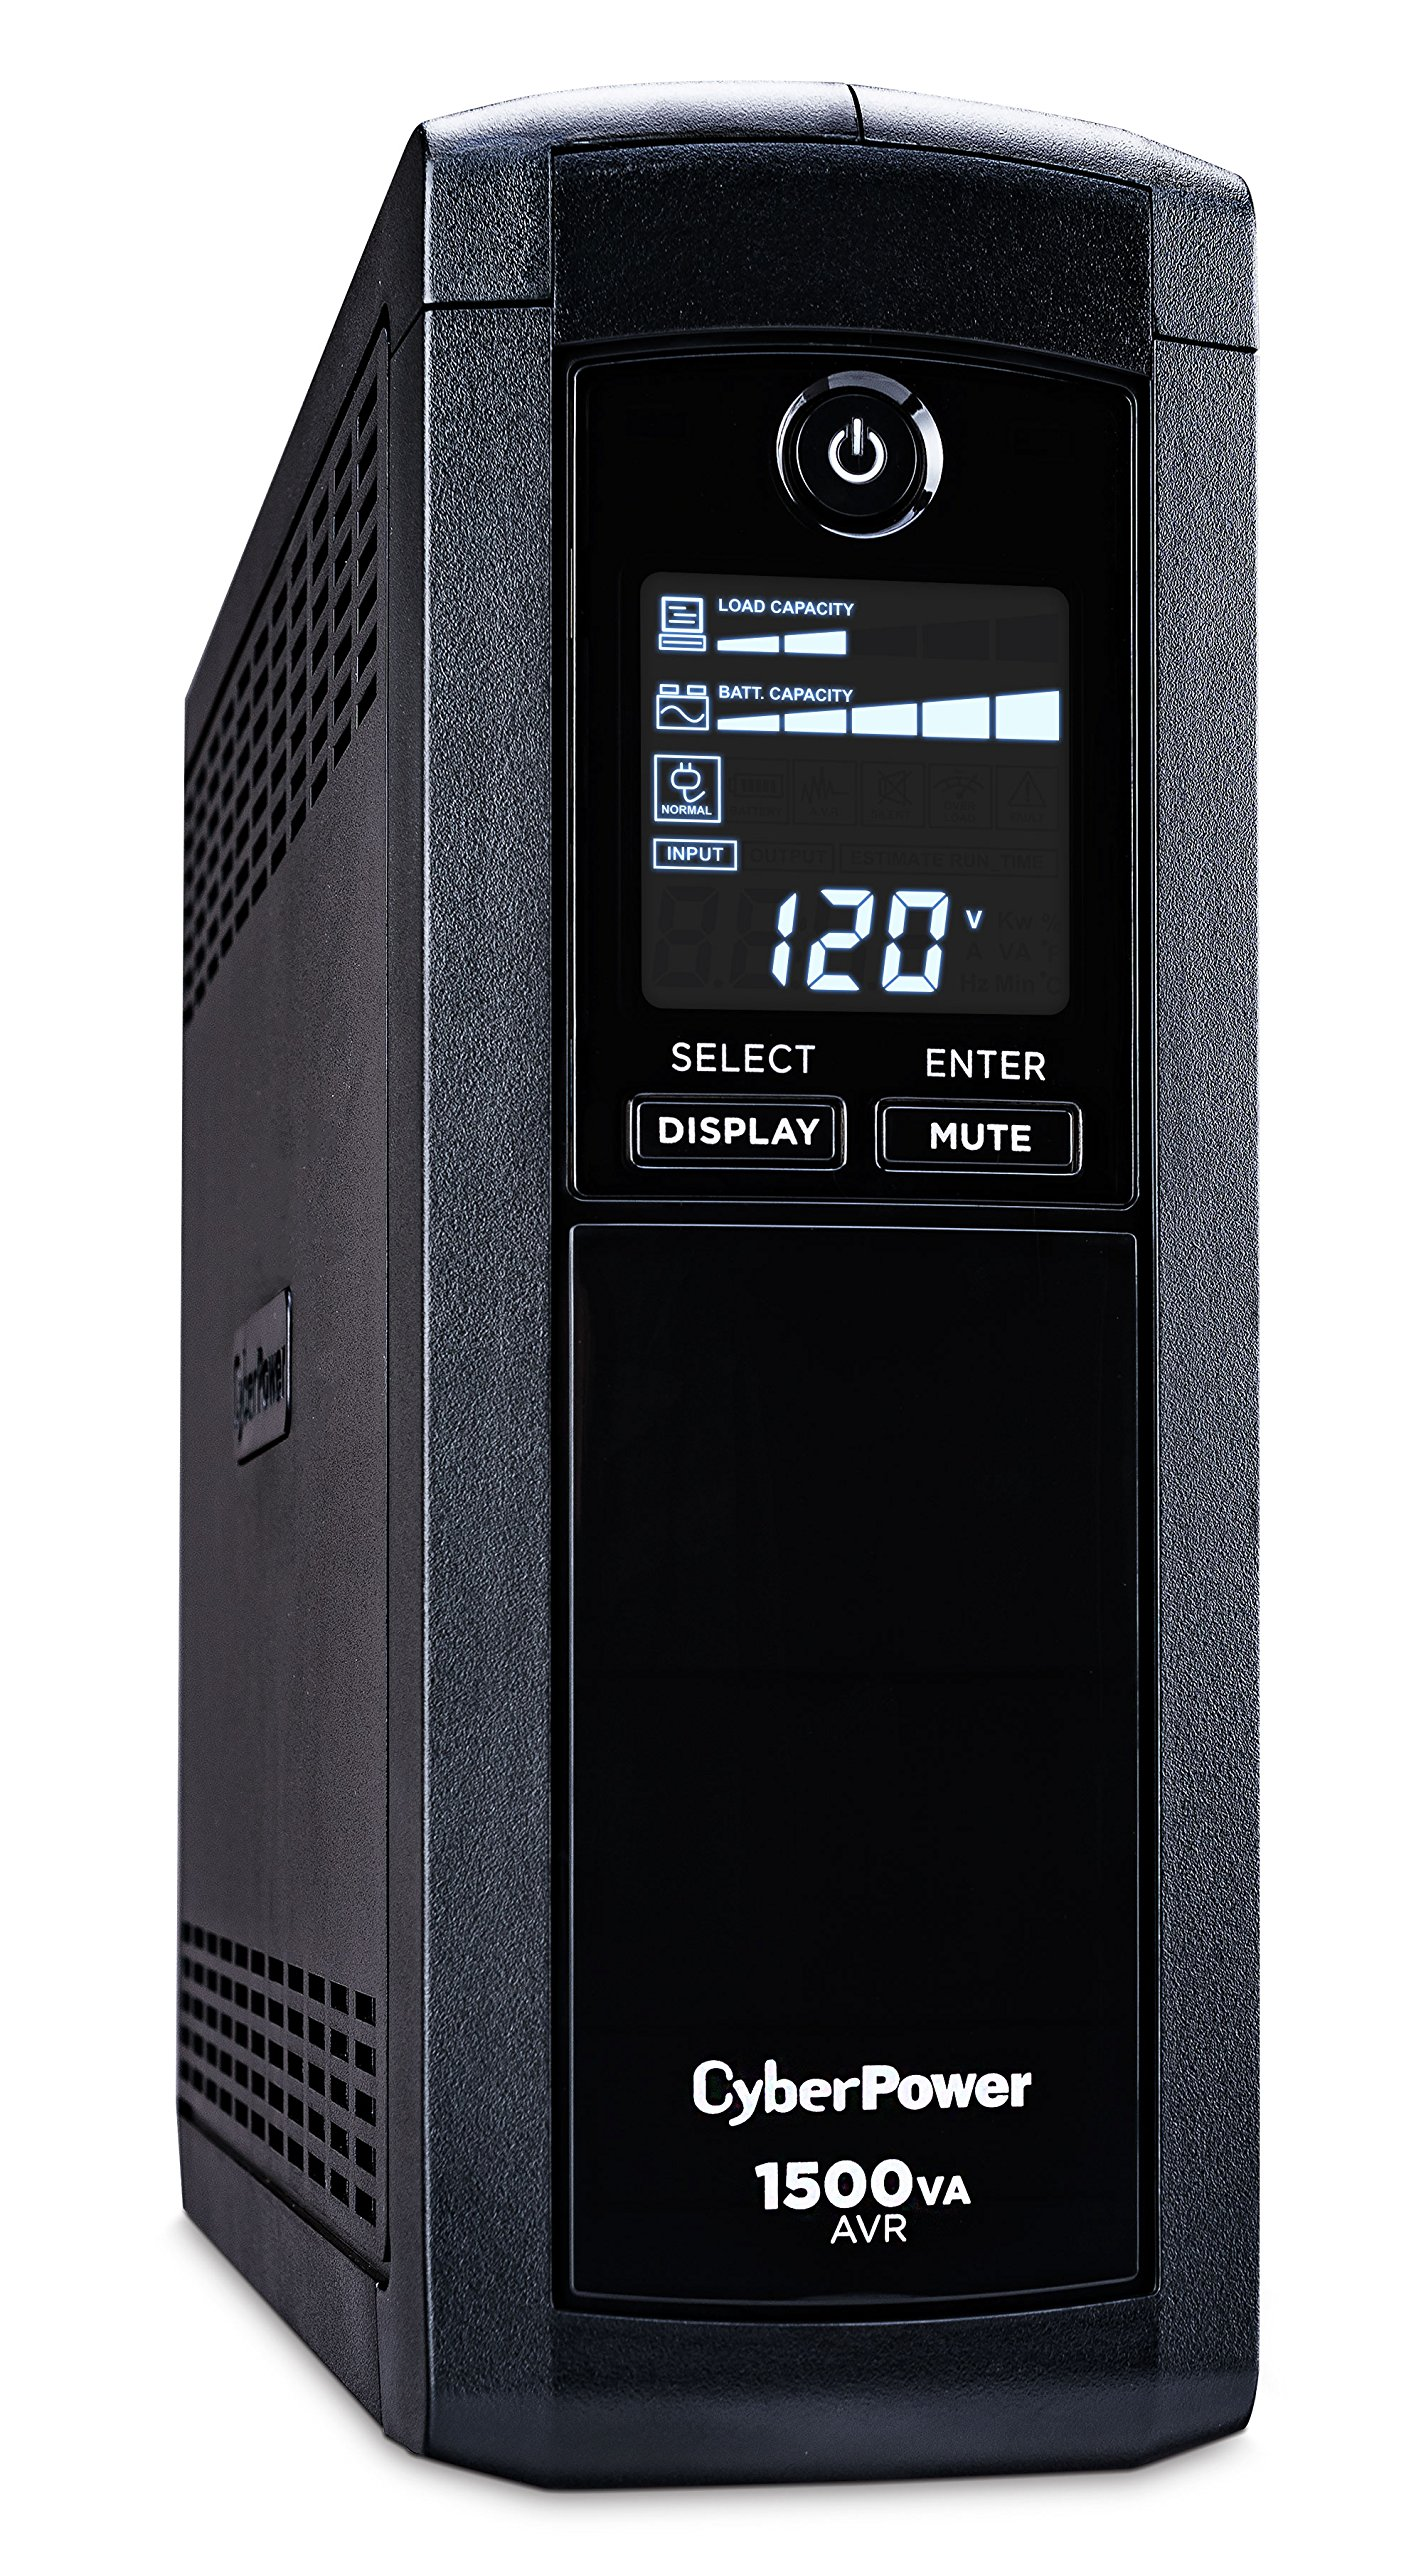 CyberPower CP150AVRLCD Intelligent LCD UPS System, 1500VA/900W, 12 Outlets, AVR, Mini-Tower by CyberPower